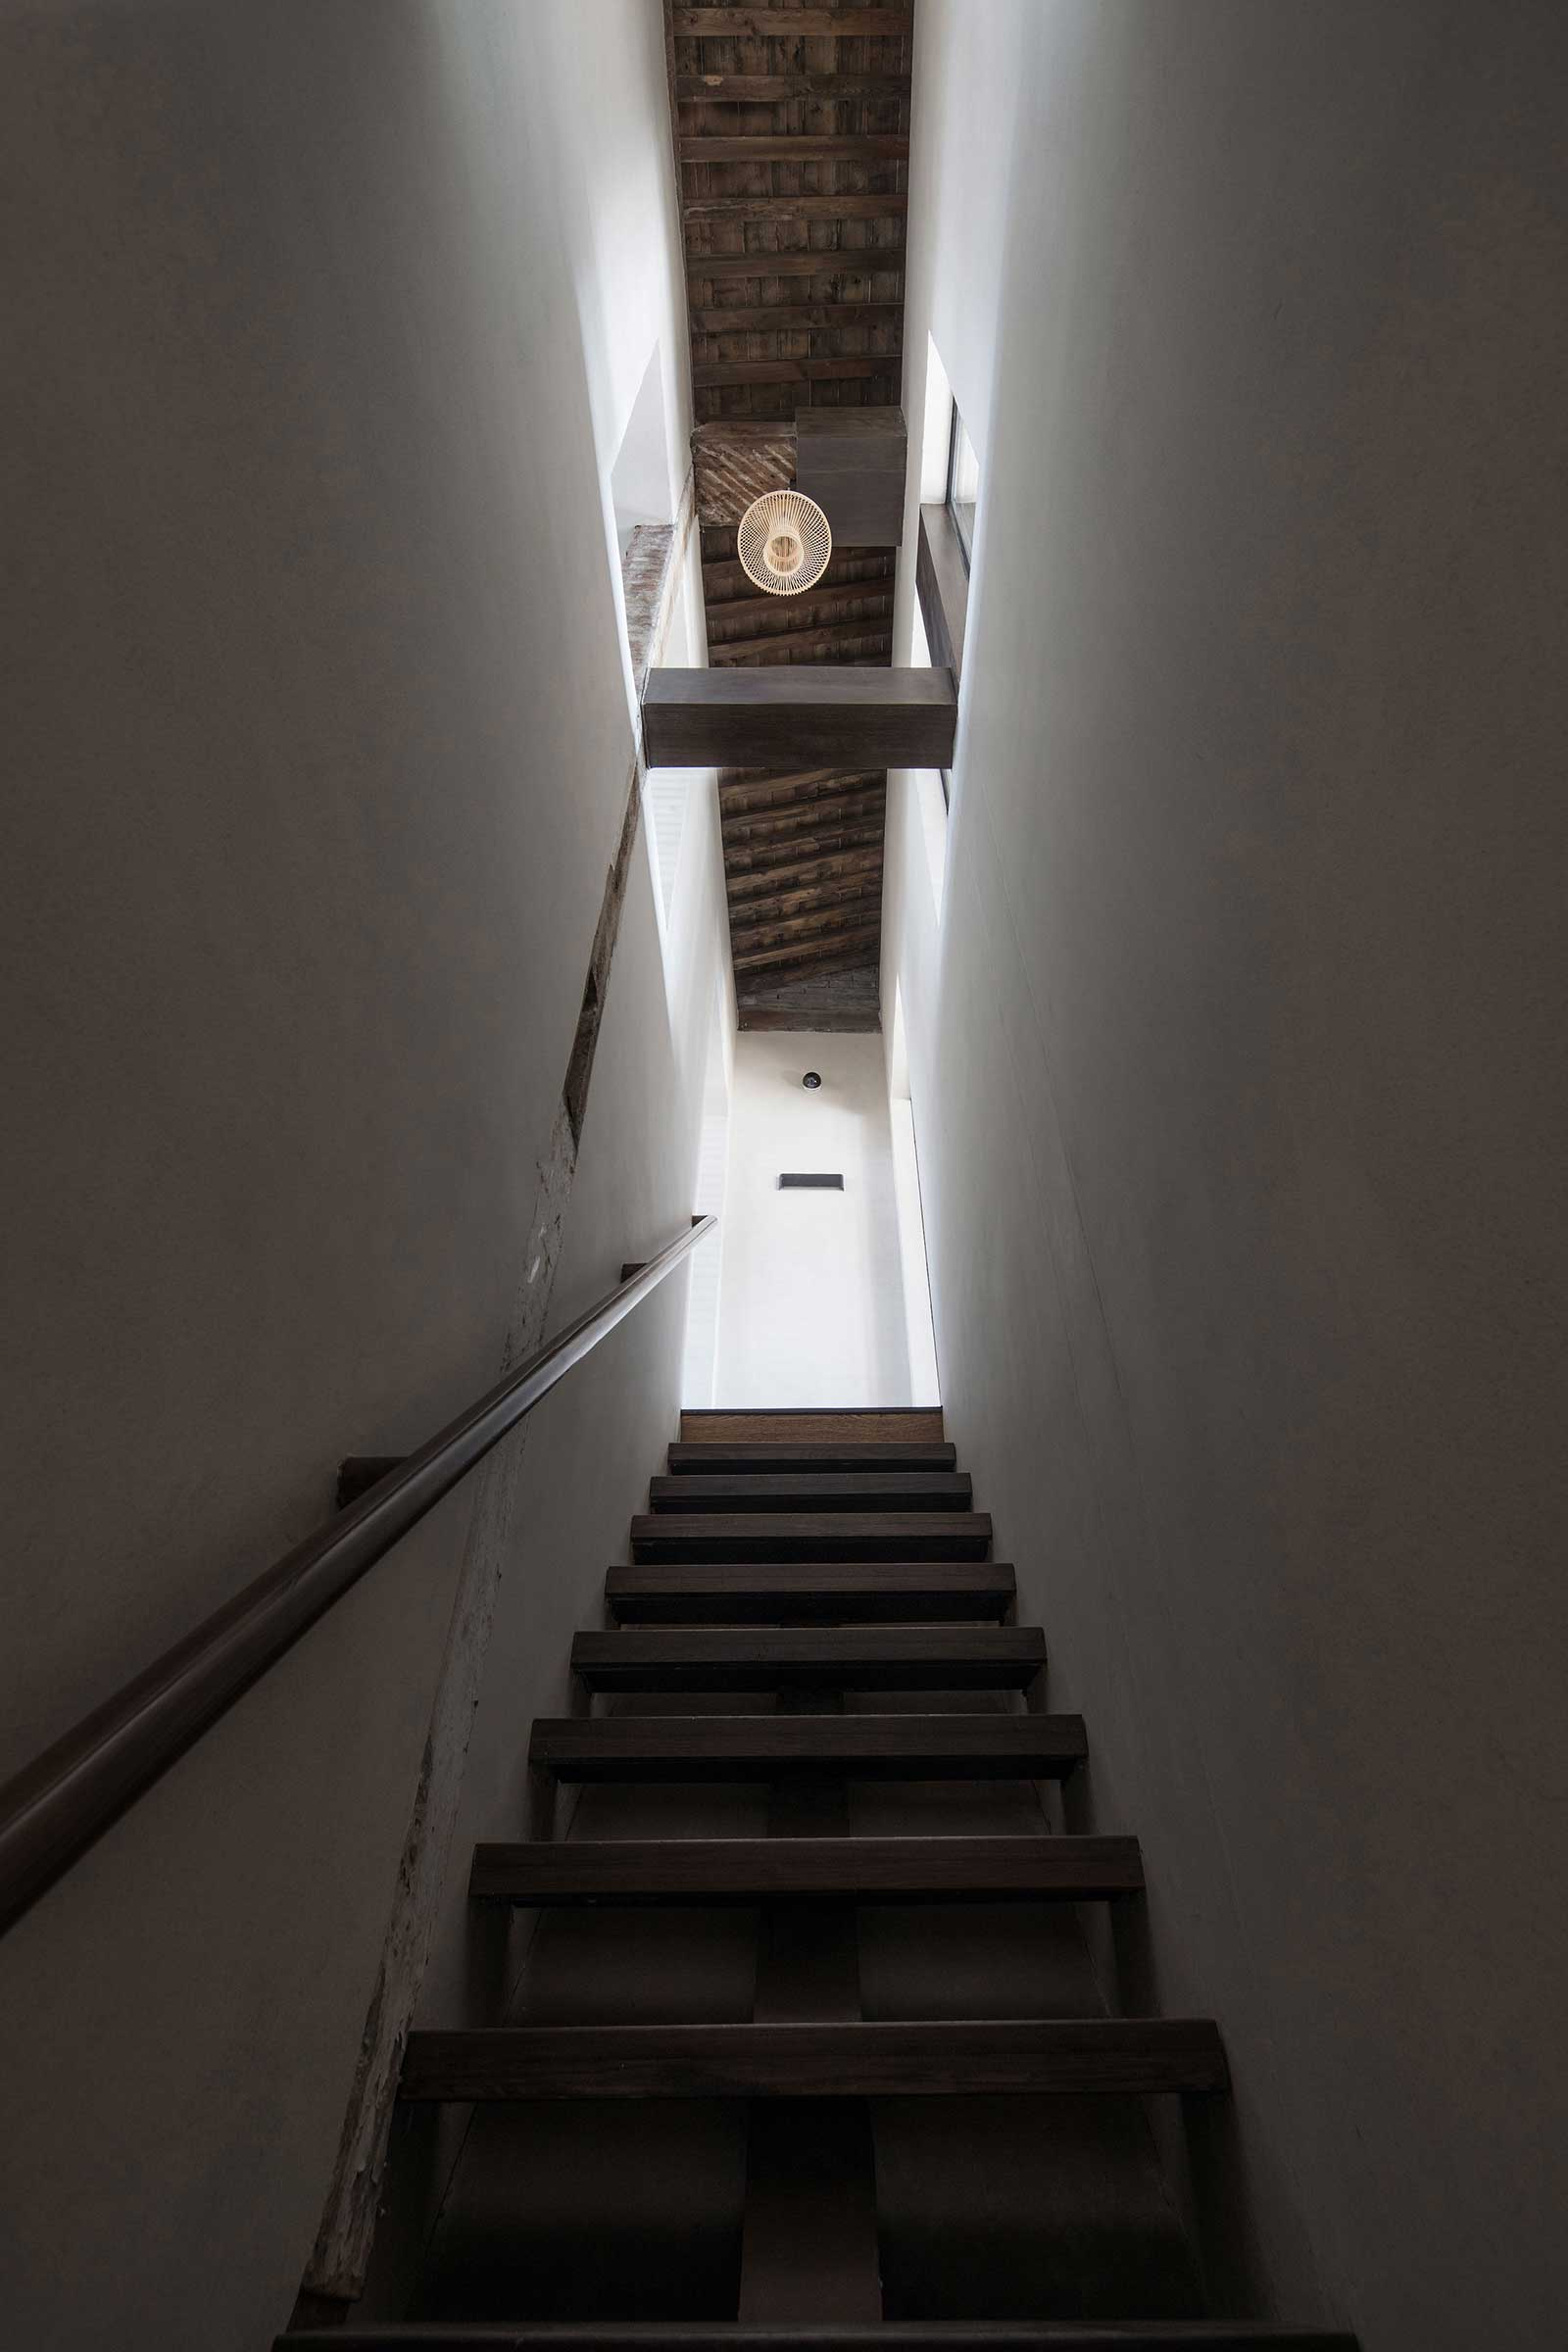 quad-house-ARCHISTRY-nolan-chao-25--first-to-second-floor-stairwell.jpg